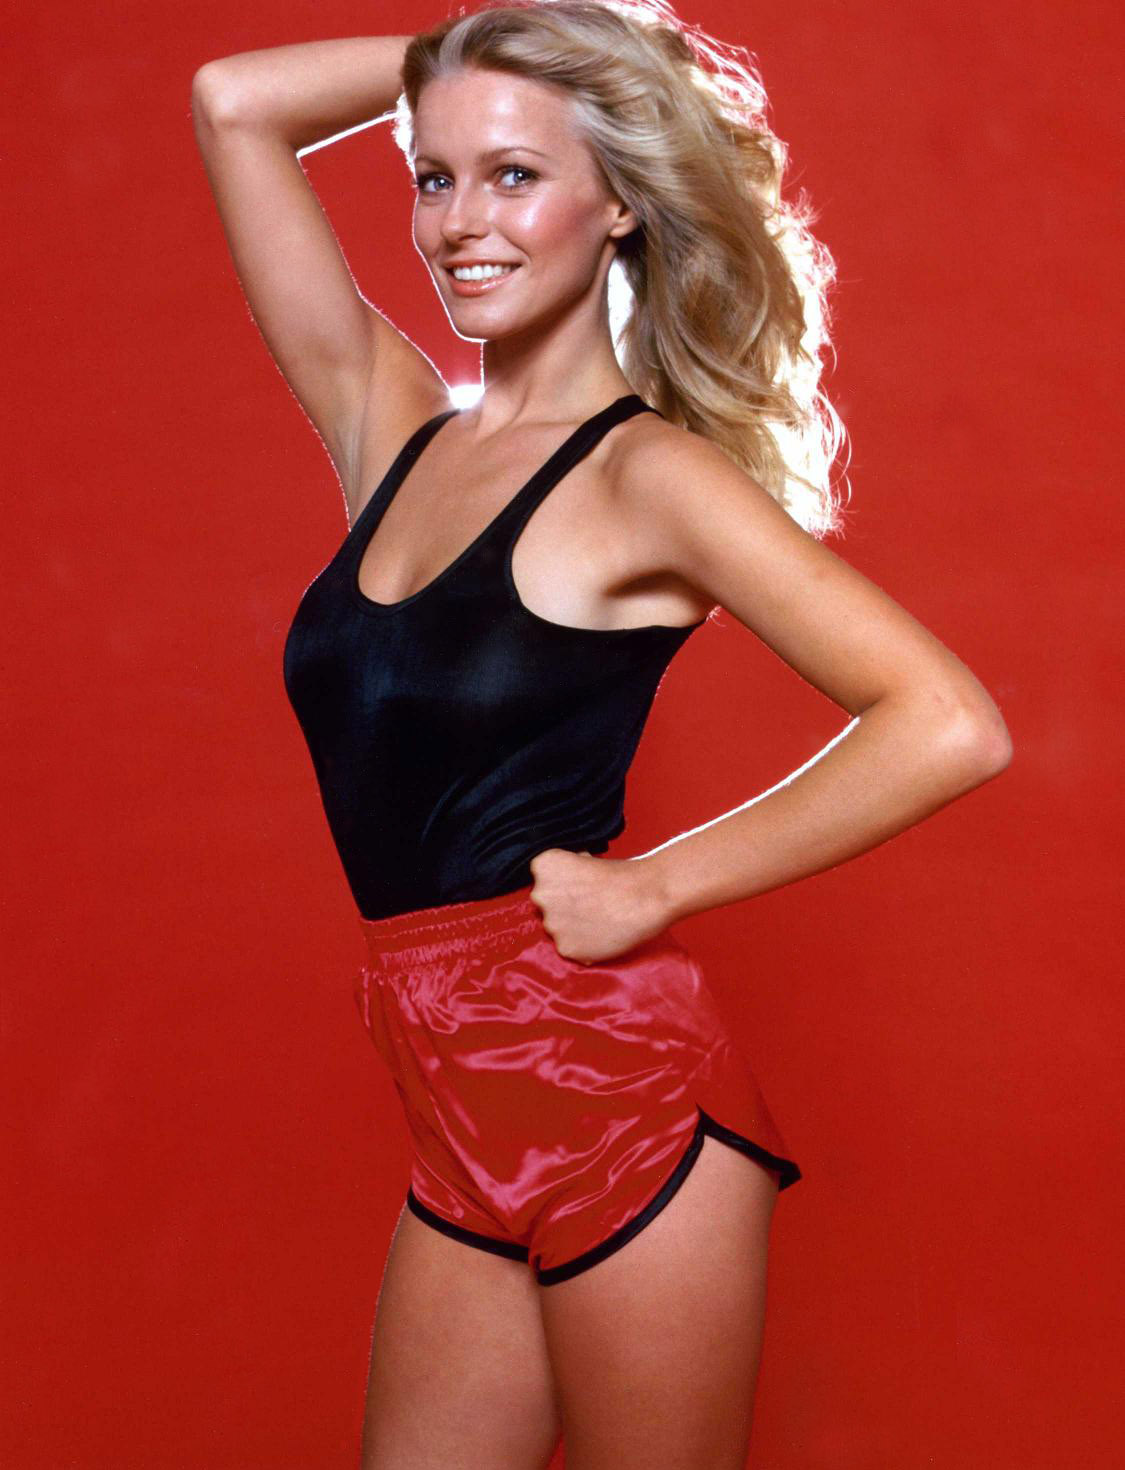 Cheryl Ladd- I actually own shorts like this, and it's her fault.